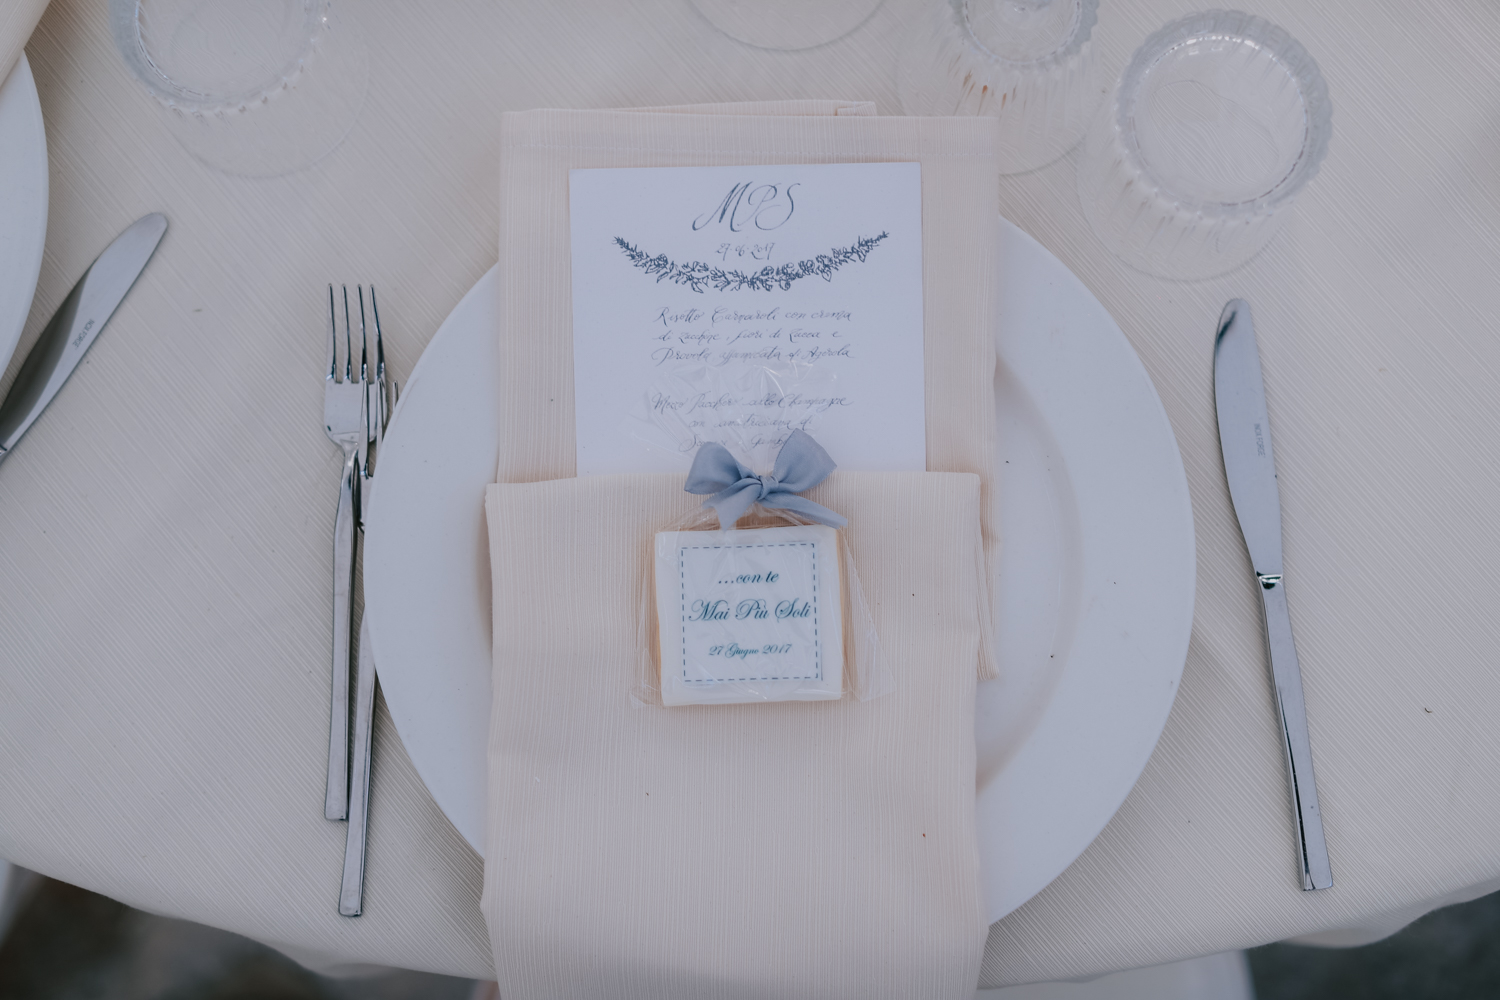 http://www.weddingamalfi.com/wp-content/uploads/Alessandro-and-Diego-wedding-place-card-and-menu.jpg